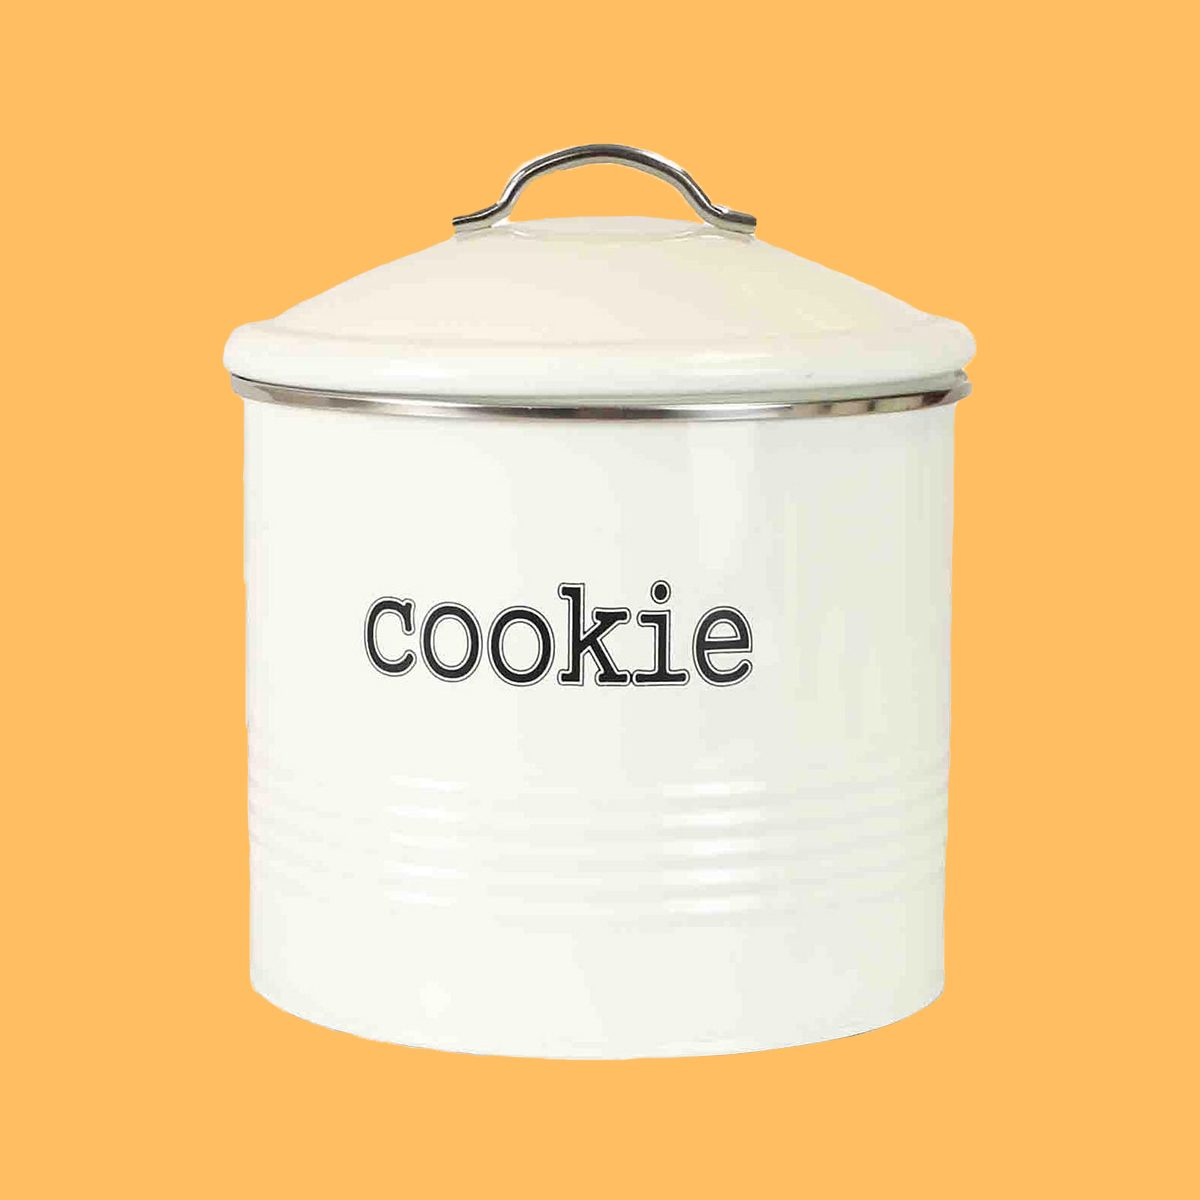 12 Cute Quirky Cookie Jars To Brighten Up Your Kitchen